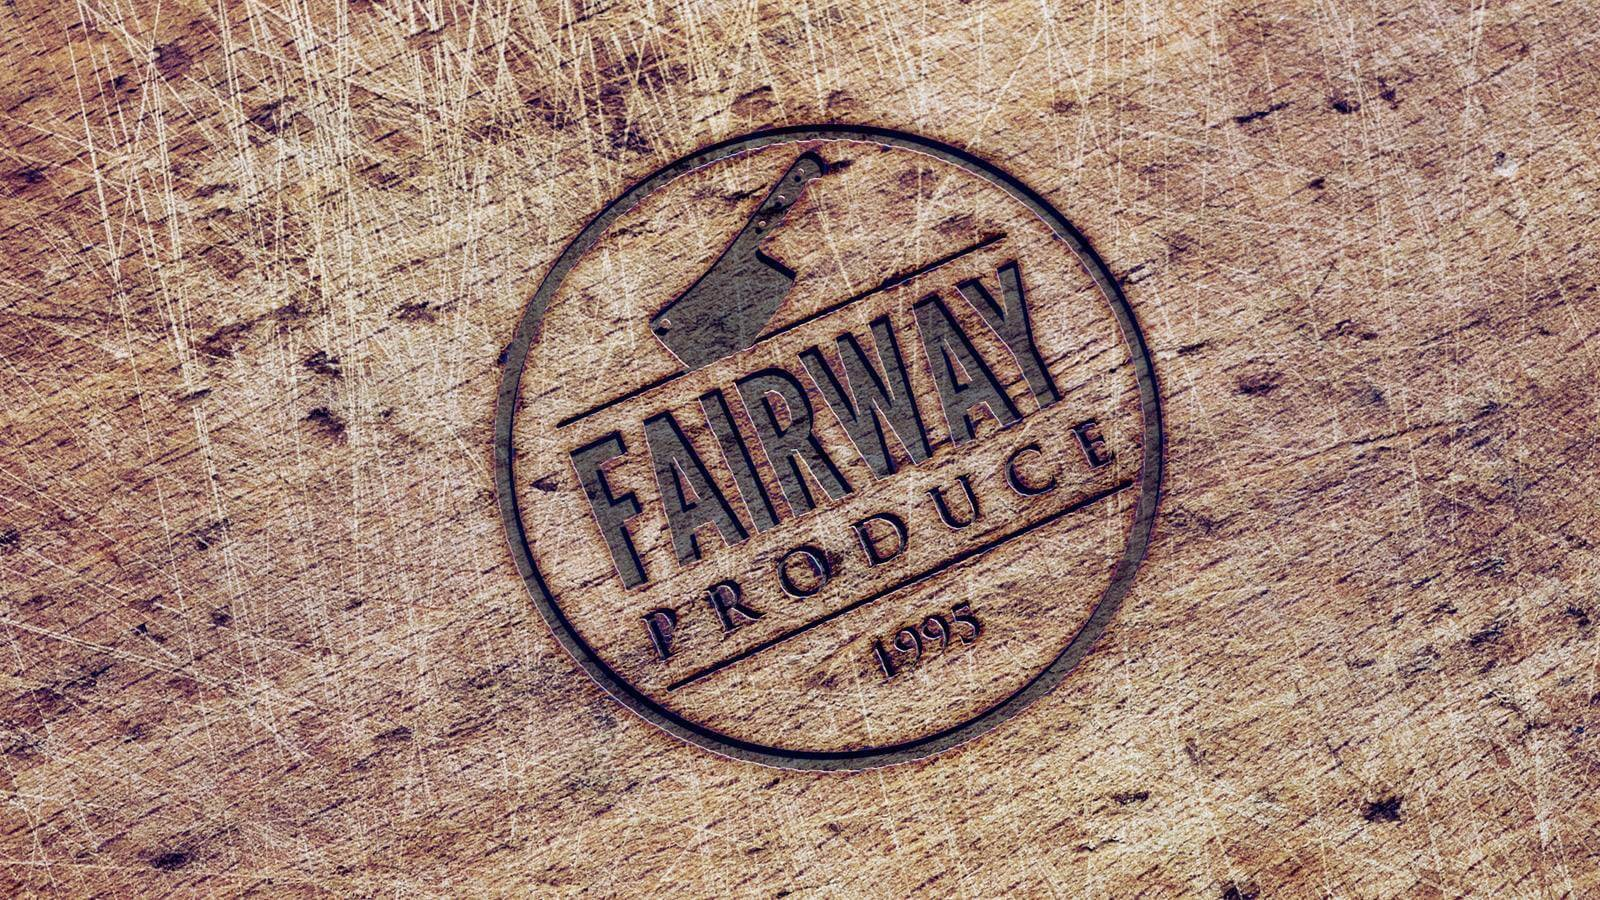 Fairway-produce-logo-design-agency-graphic-design-canterbury.jpg